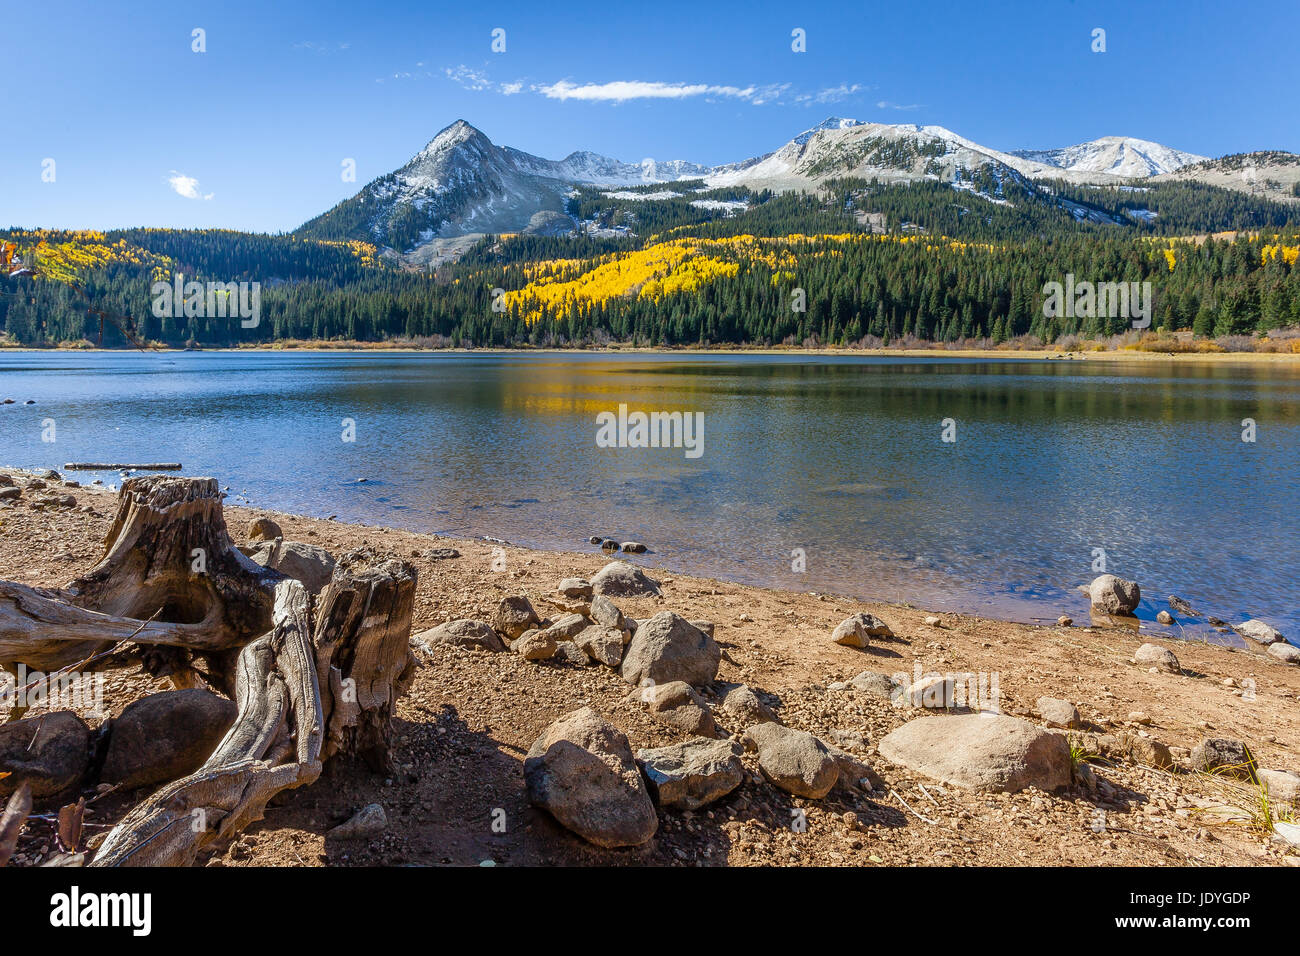 Lost Lake along the Kebler Pass in the Gunnison National Forest, Colorado Stock Photo